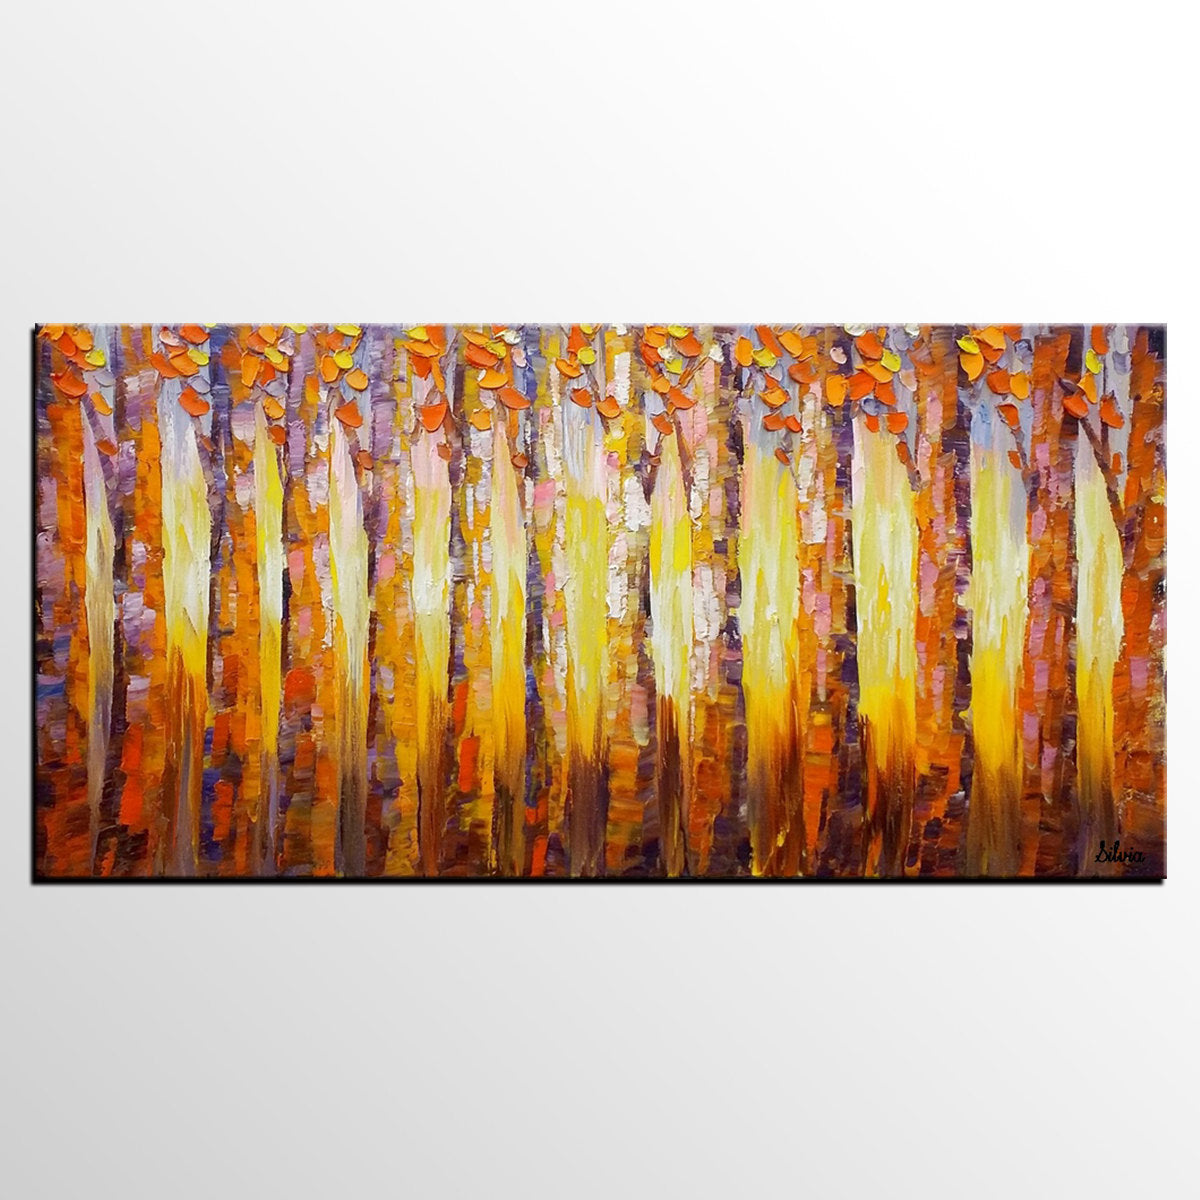 Original Oil Painting, Heavy Texture Art, Abstract Landscape Art, Birch Tree Painting - Silvia Home Craft